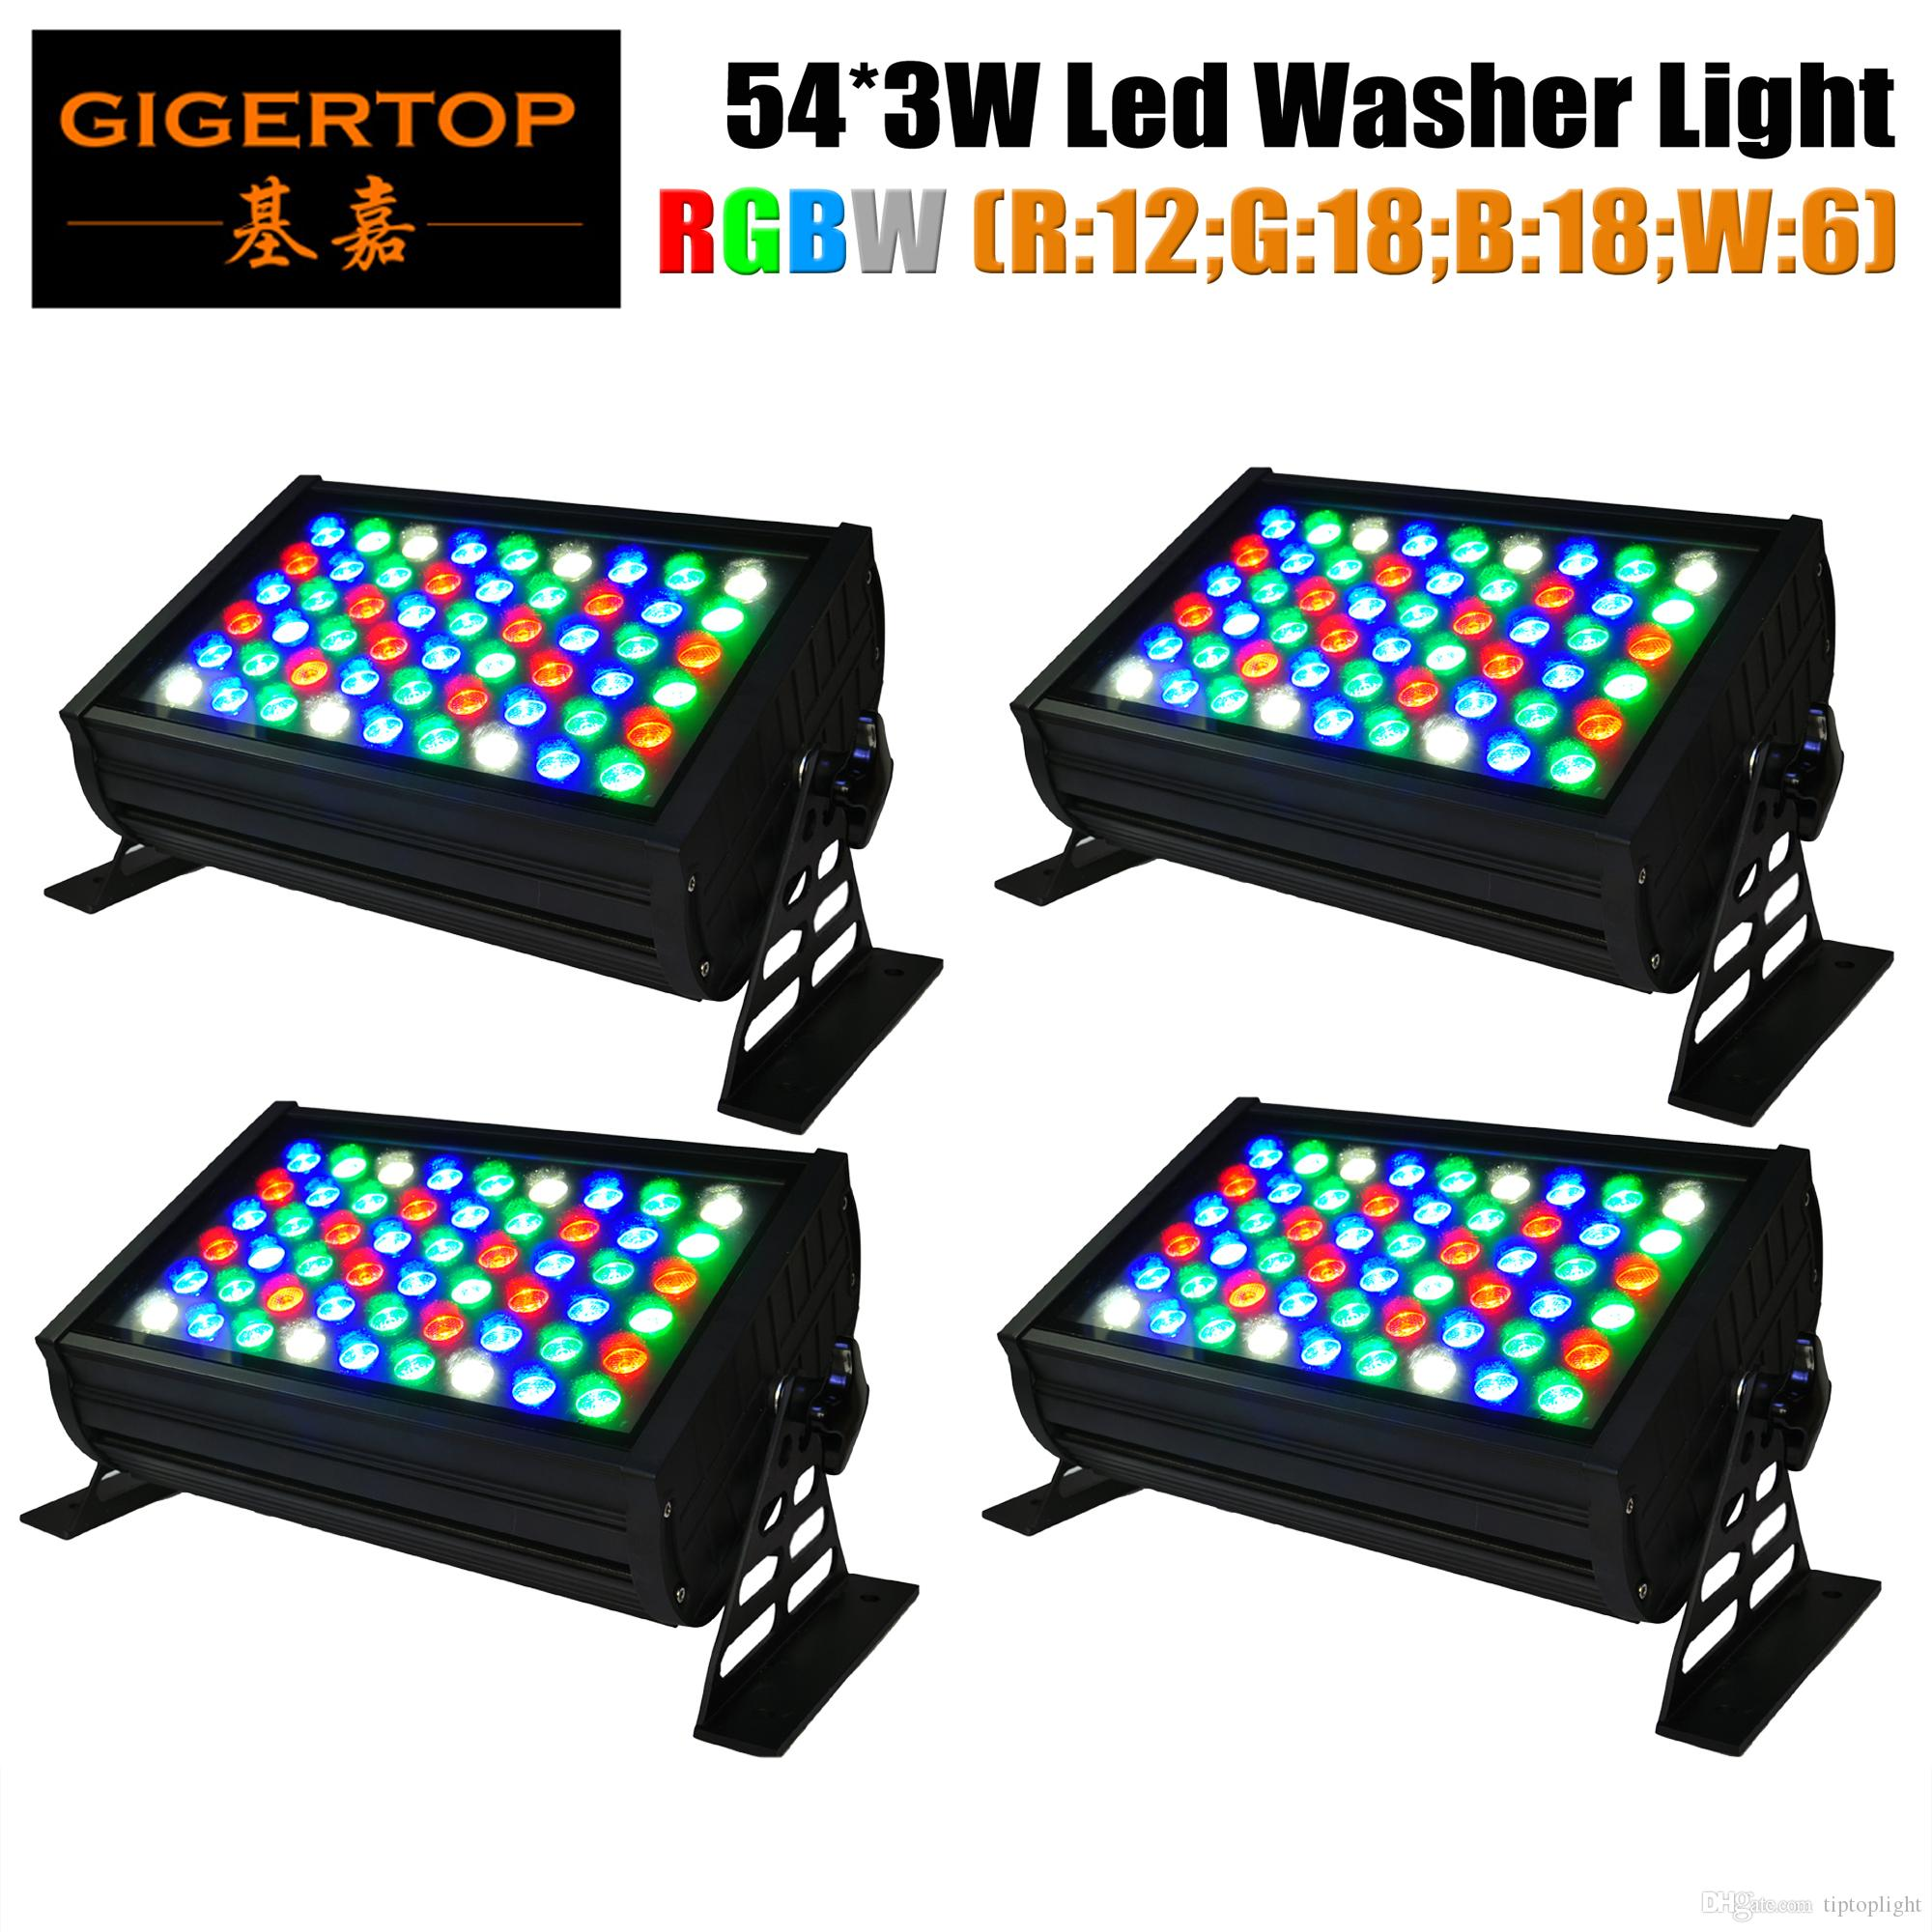 Tiptop 54x3w led wall washer light waterproof ip65 200w rgbw led see larger image aloadofball Image collections